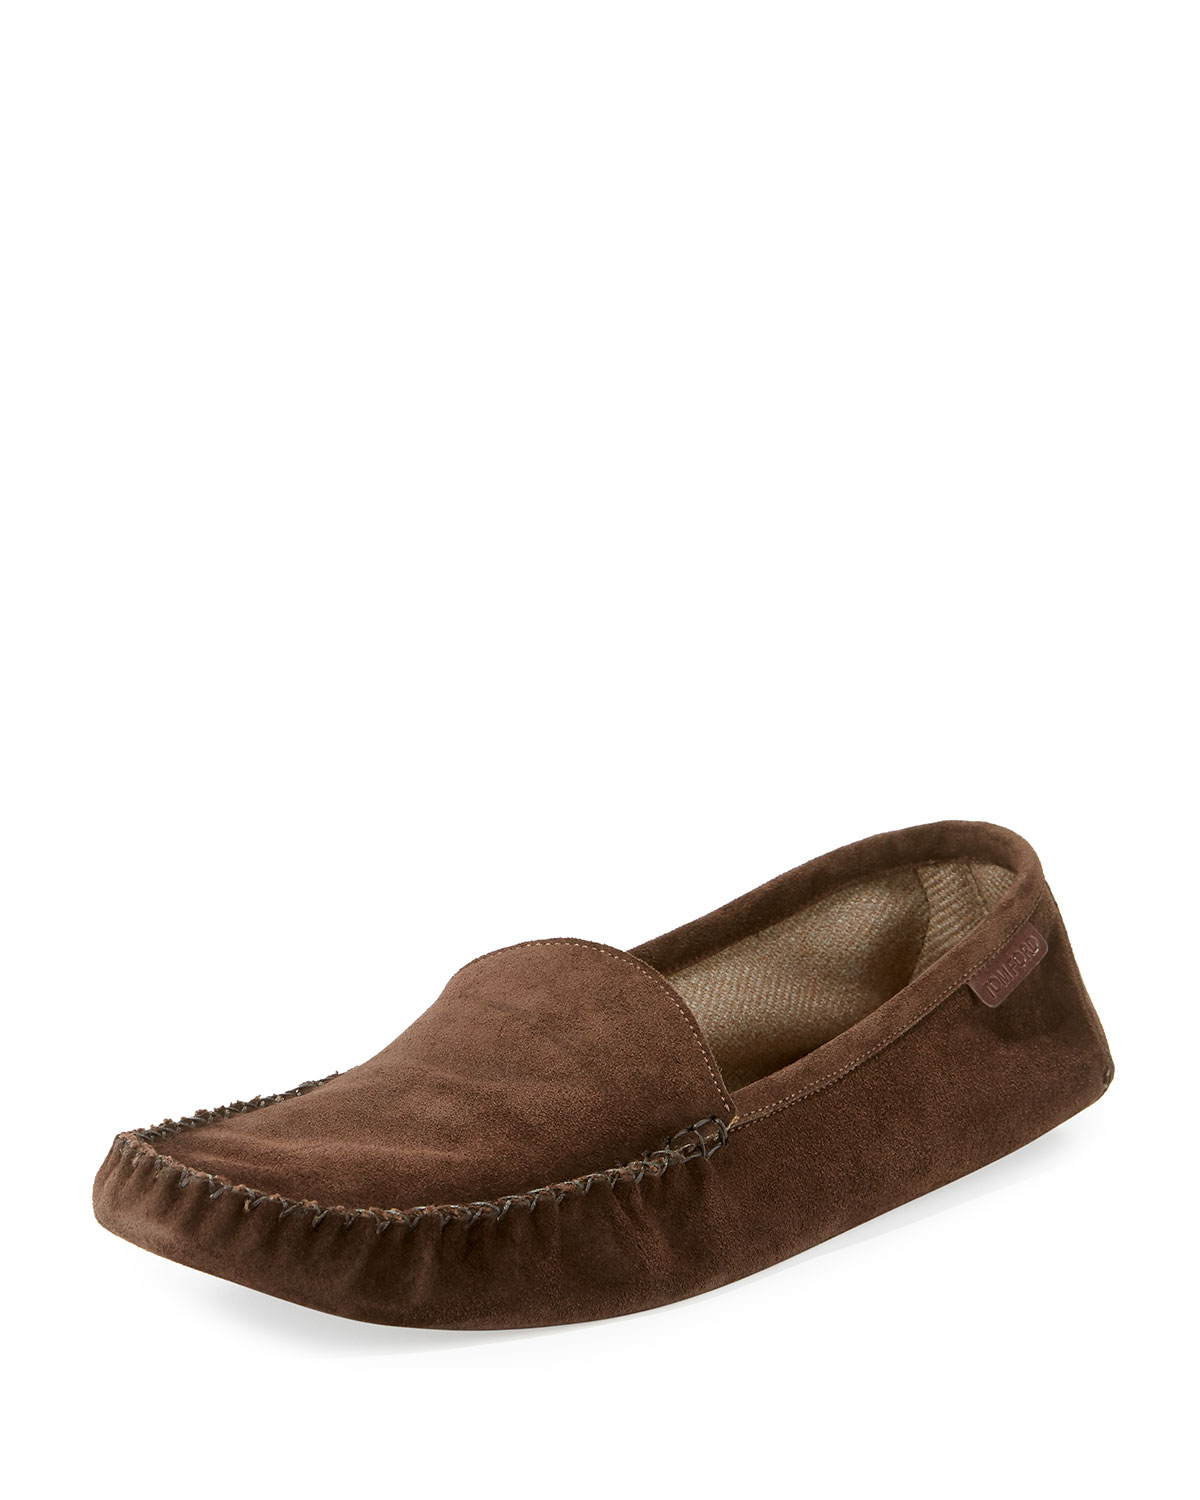 Tom Ford Slippers Howard Suede Travel Slipper  Chocolate